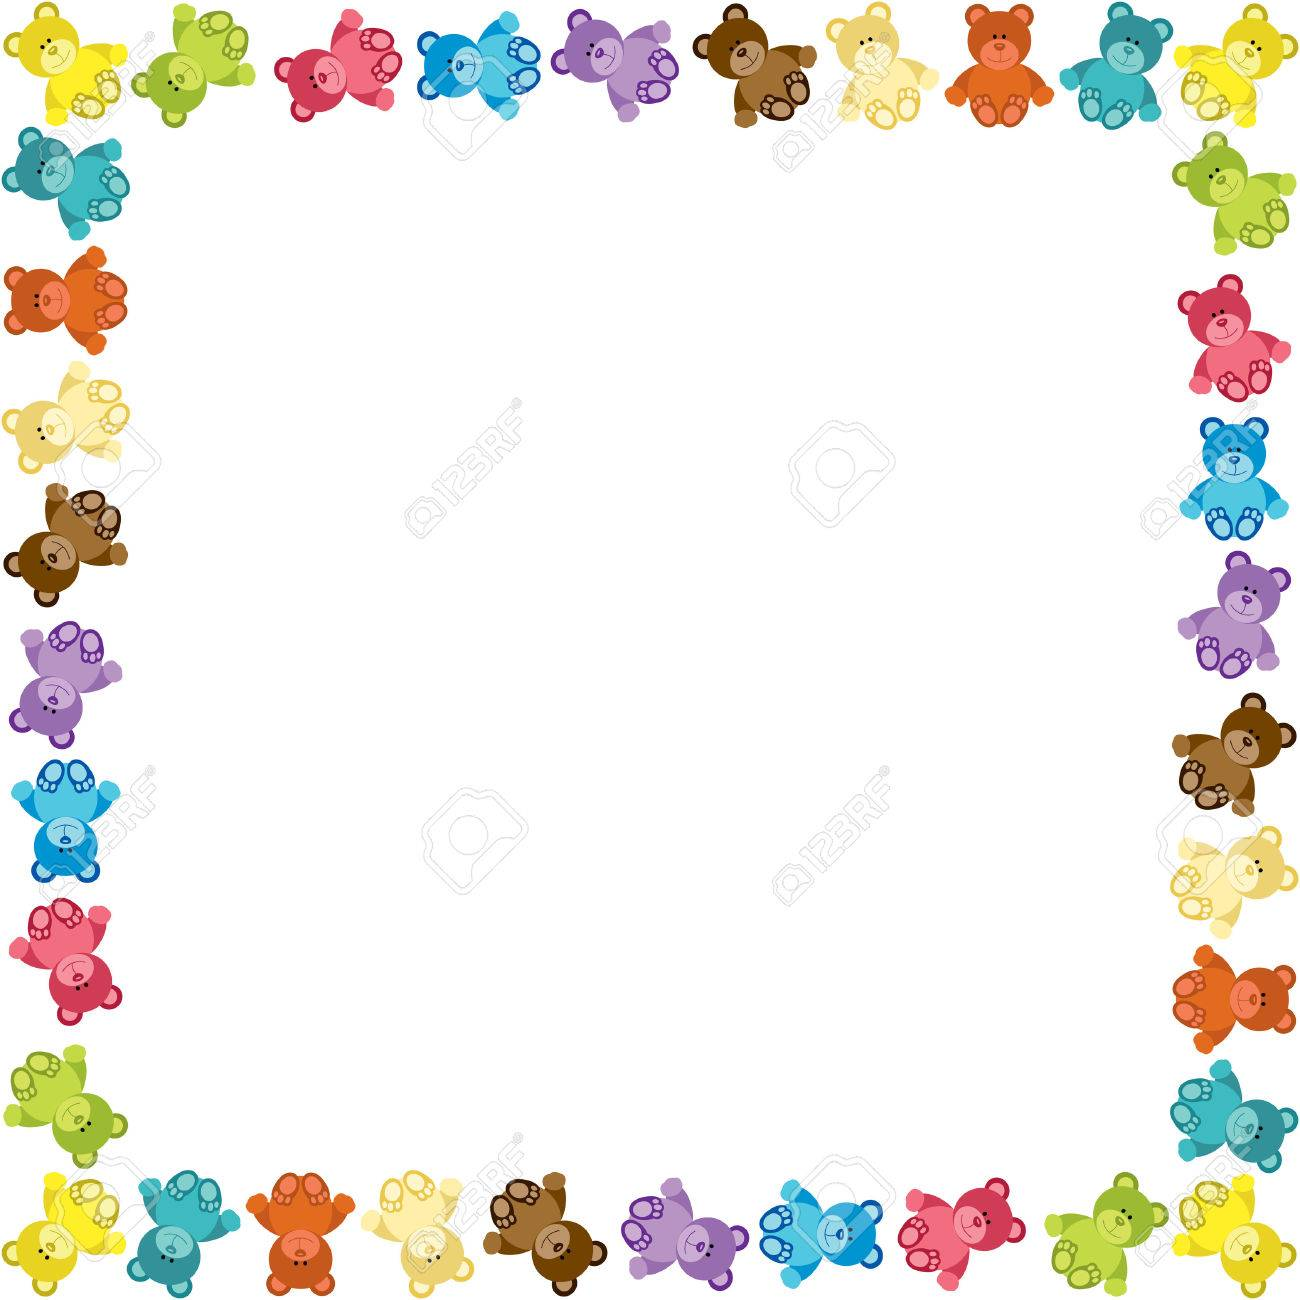 Colored Teddy Bear Frame Royalty Free Cliparts, Vectors, And Stock ...